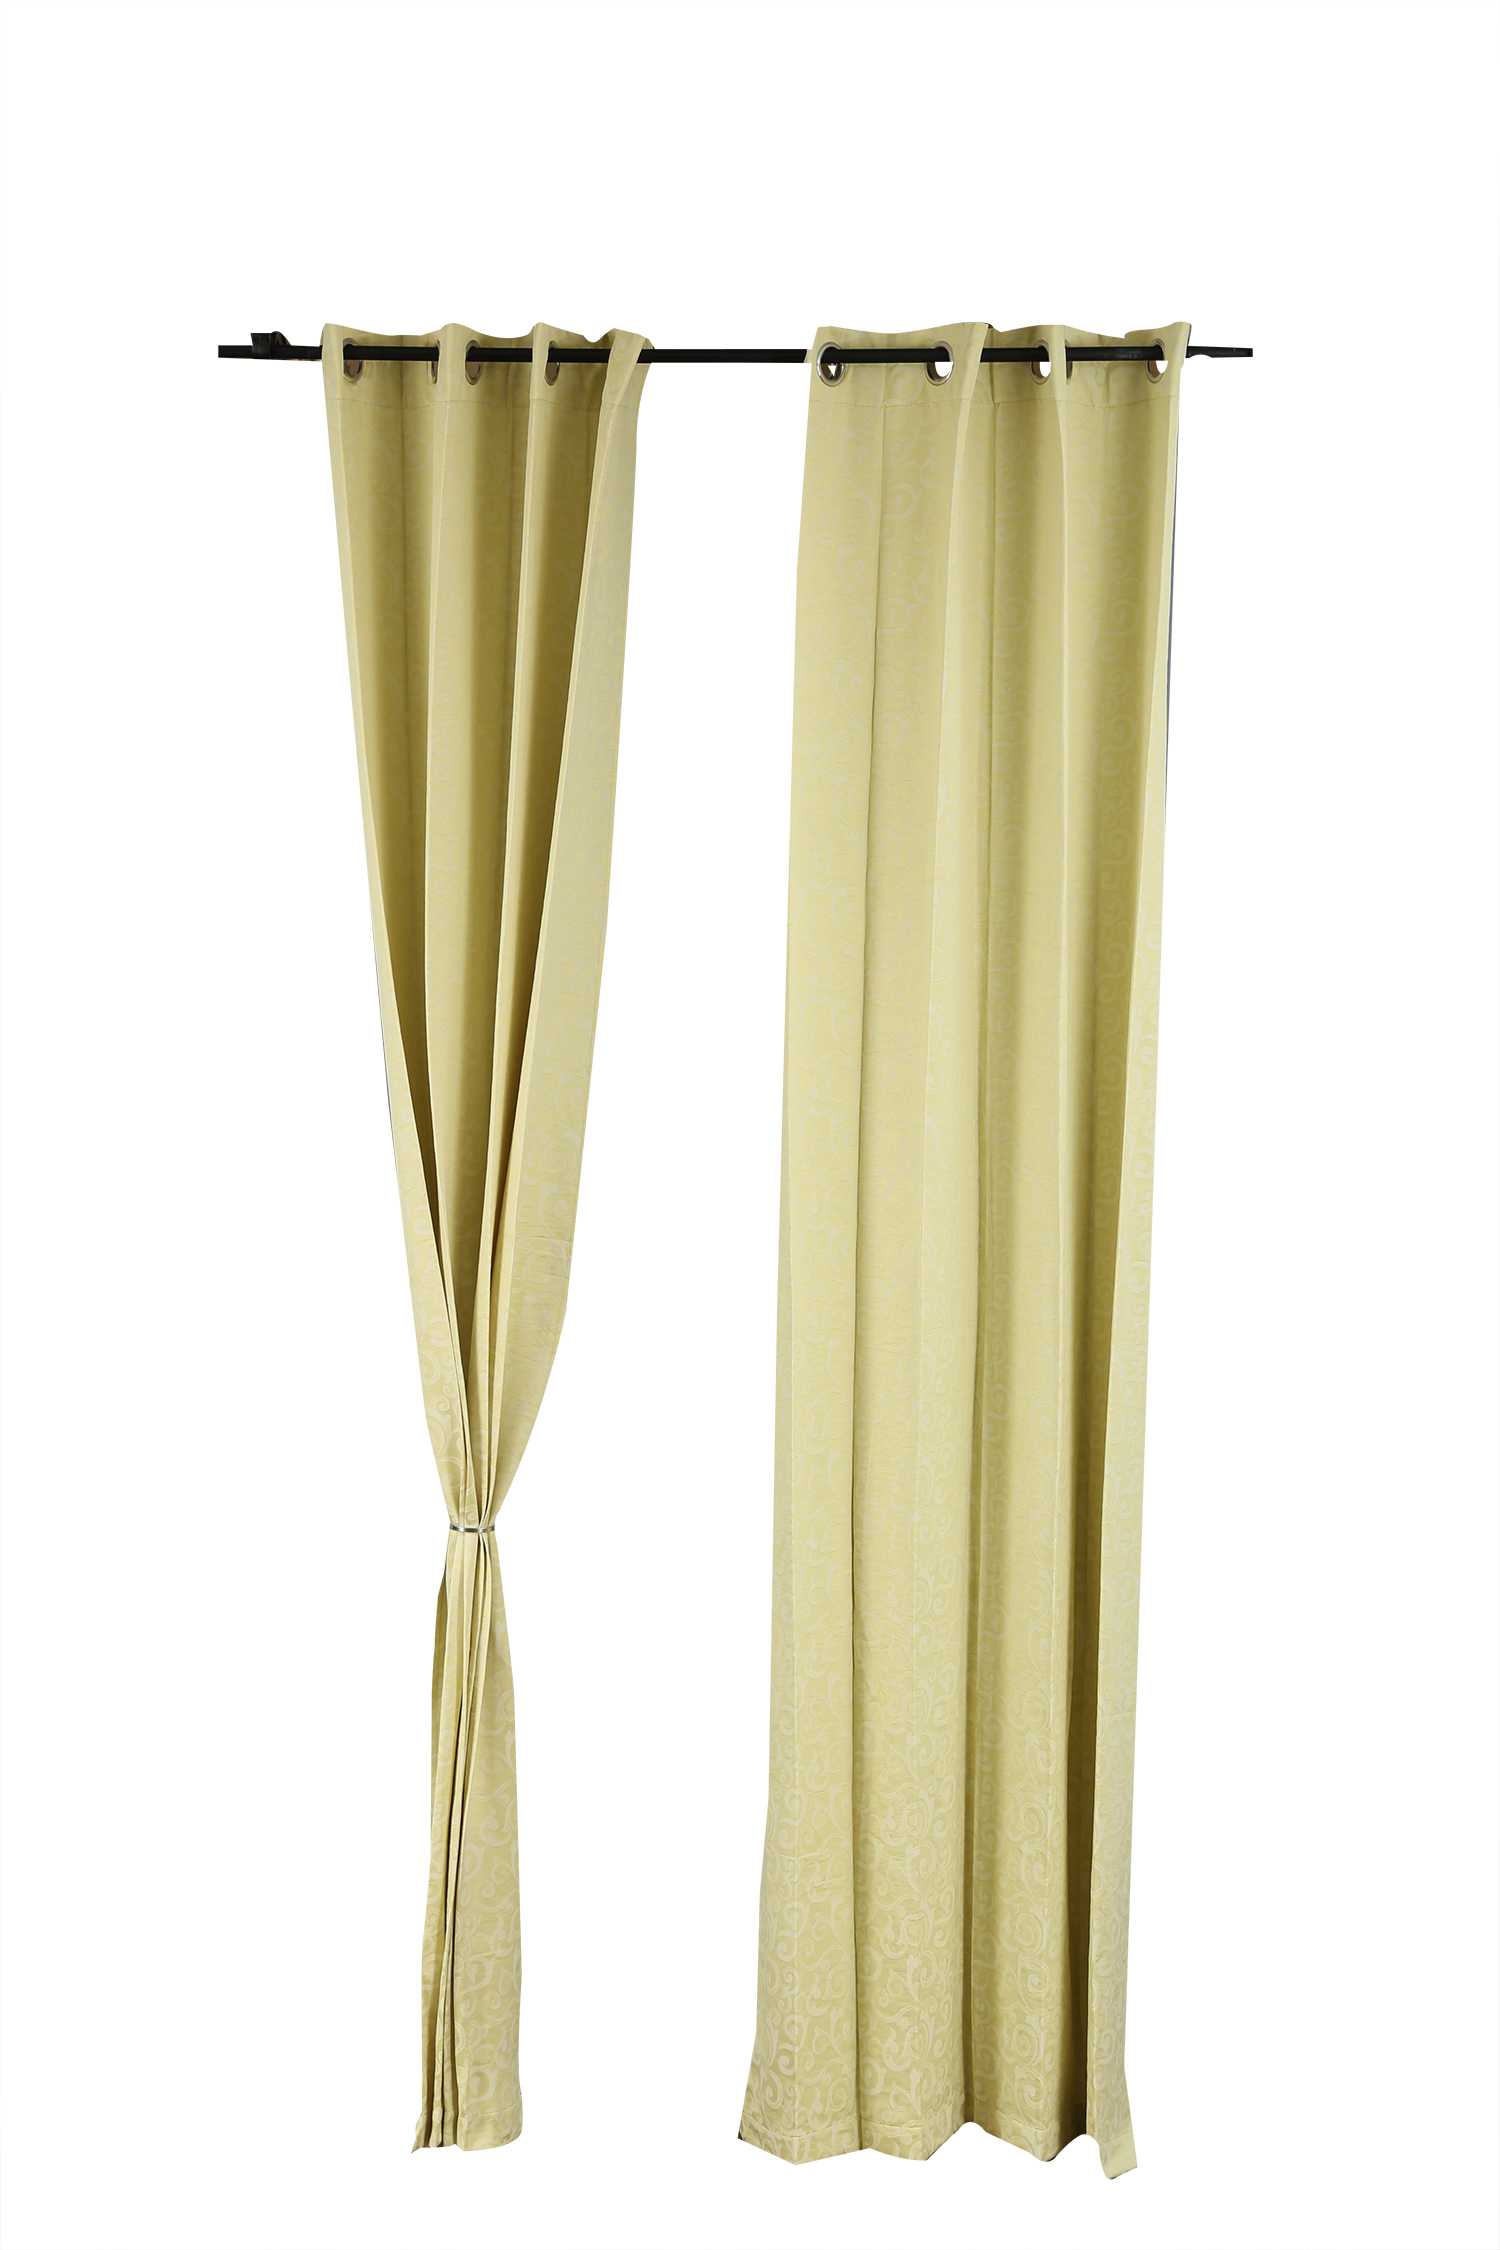 Florina Window Curtain Lime Ice Polyester Window Curtains in Lime Ice Colour by Living Essence